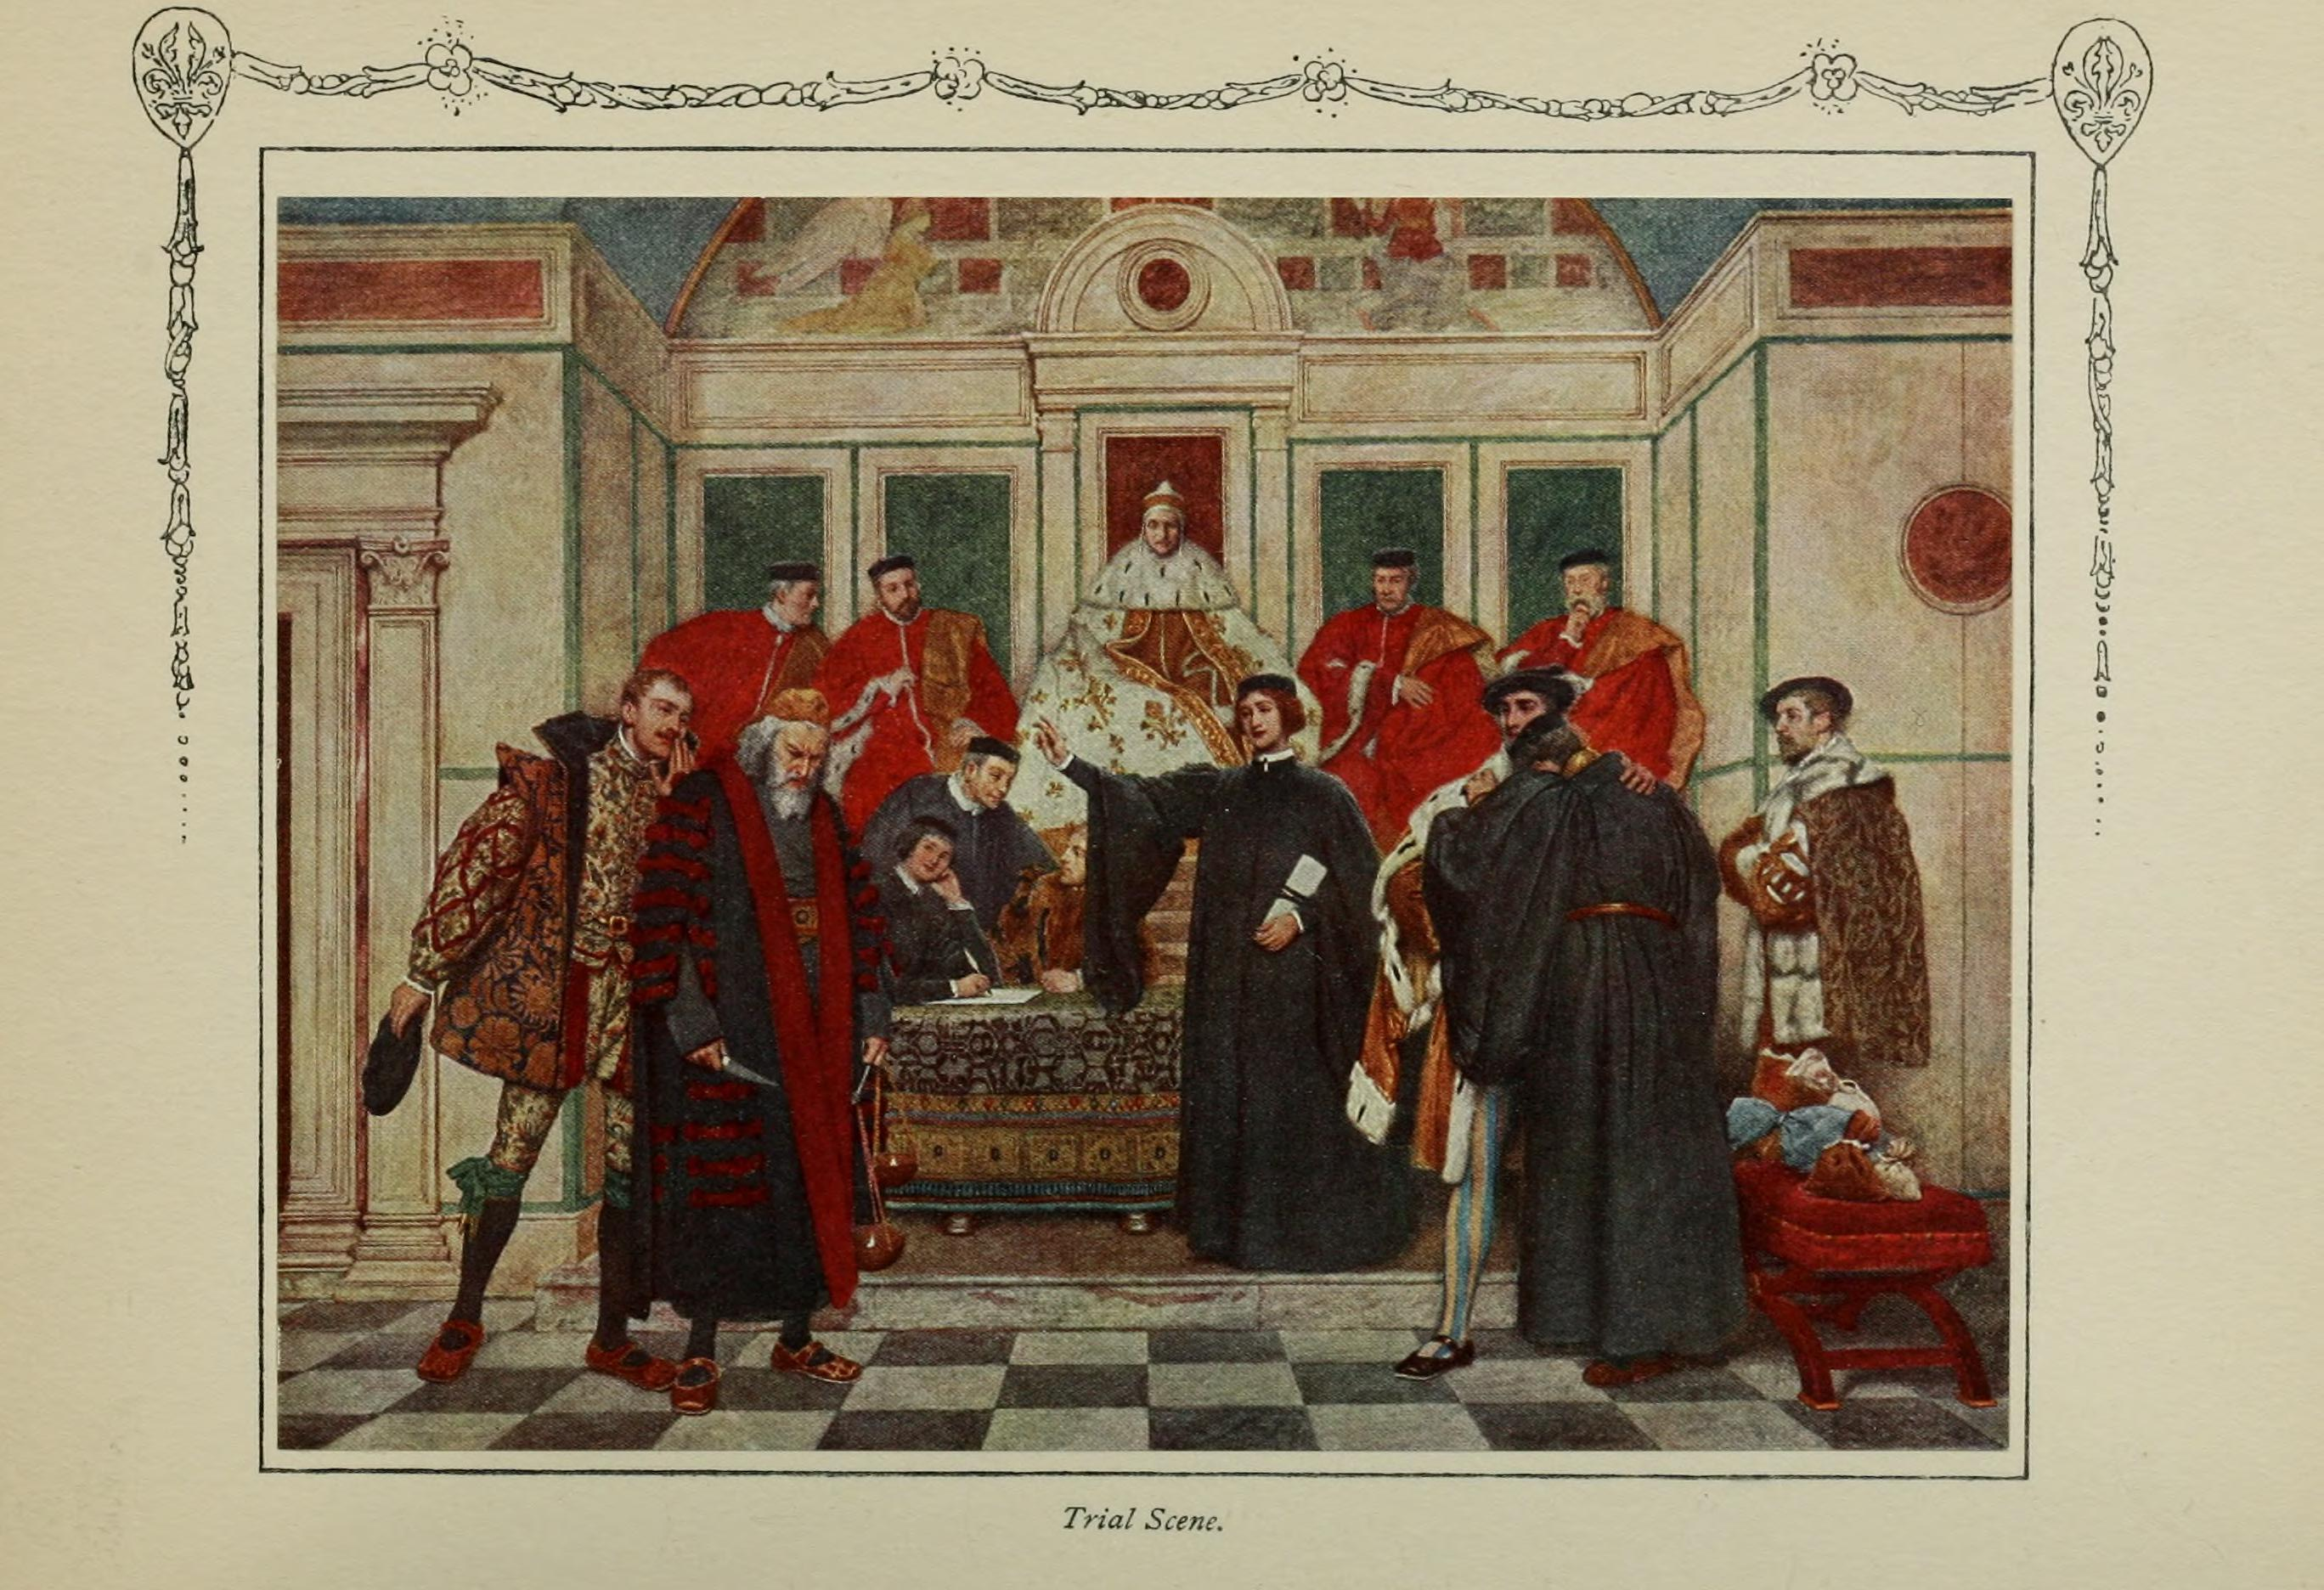 racism in the merchant of venice Merchant of venice is a play with many connected themes and plots one of the major themes of the play is prejudice prejudice takes place in all forms in the merchant of venice: against.